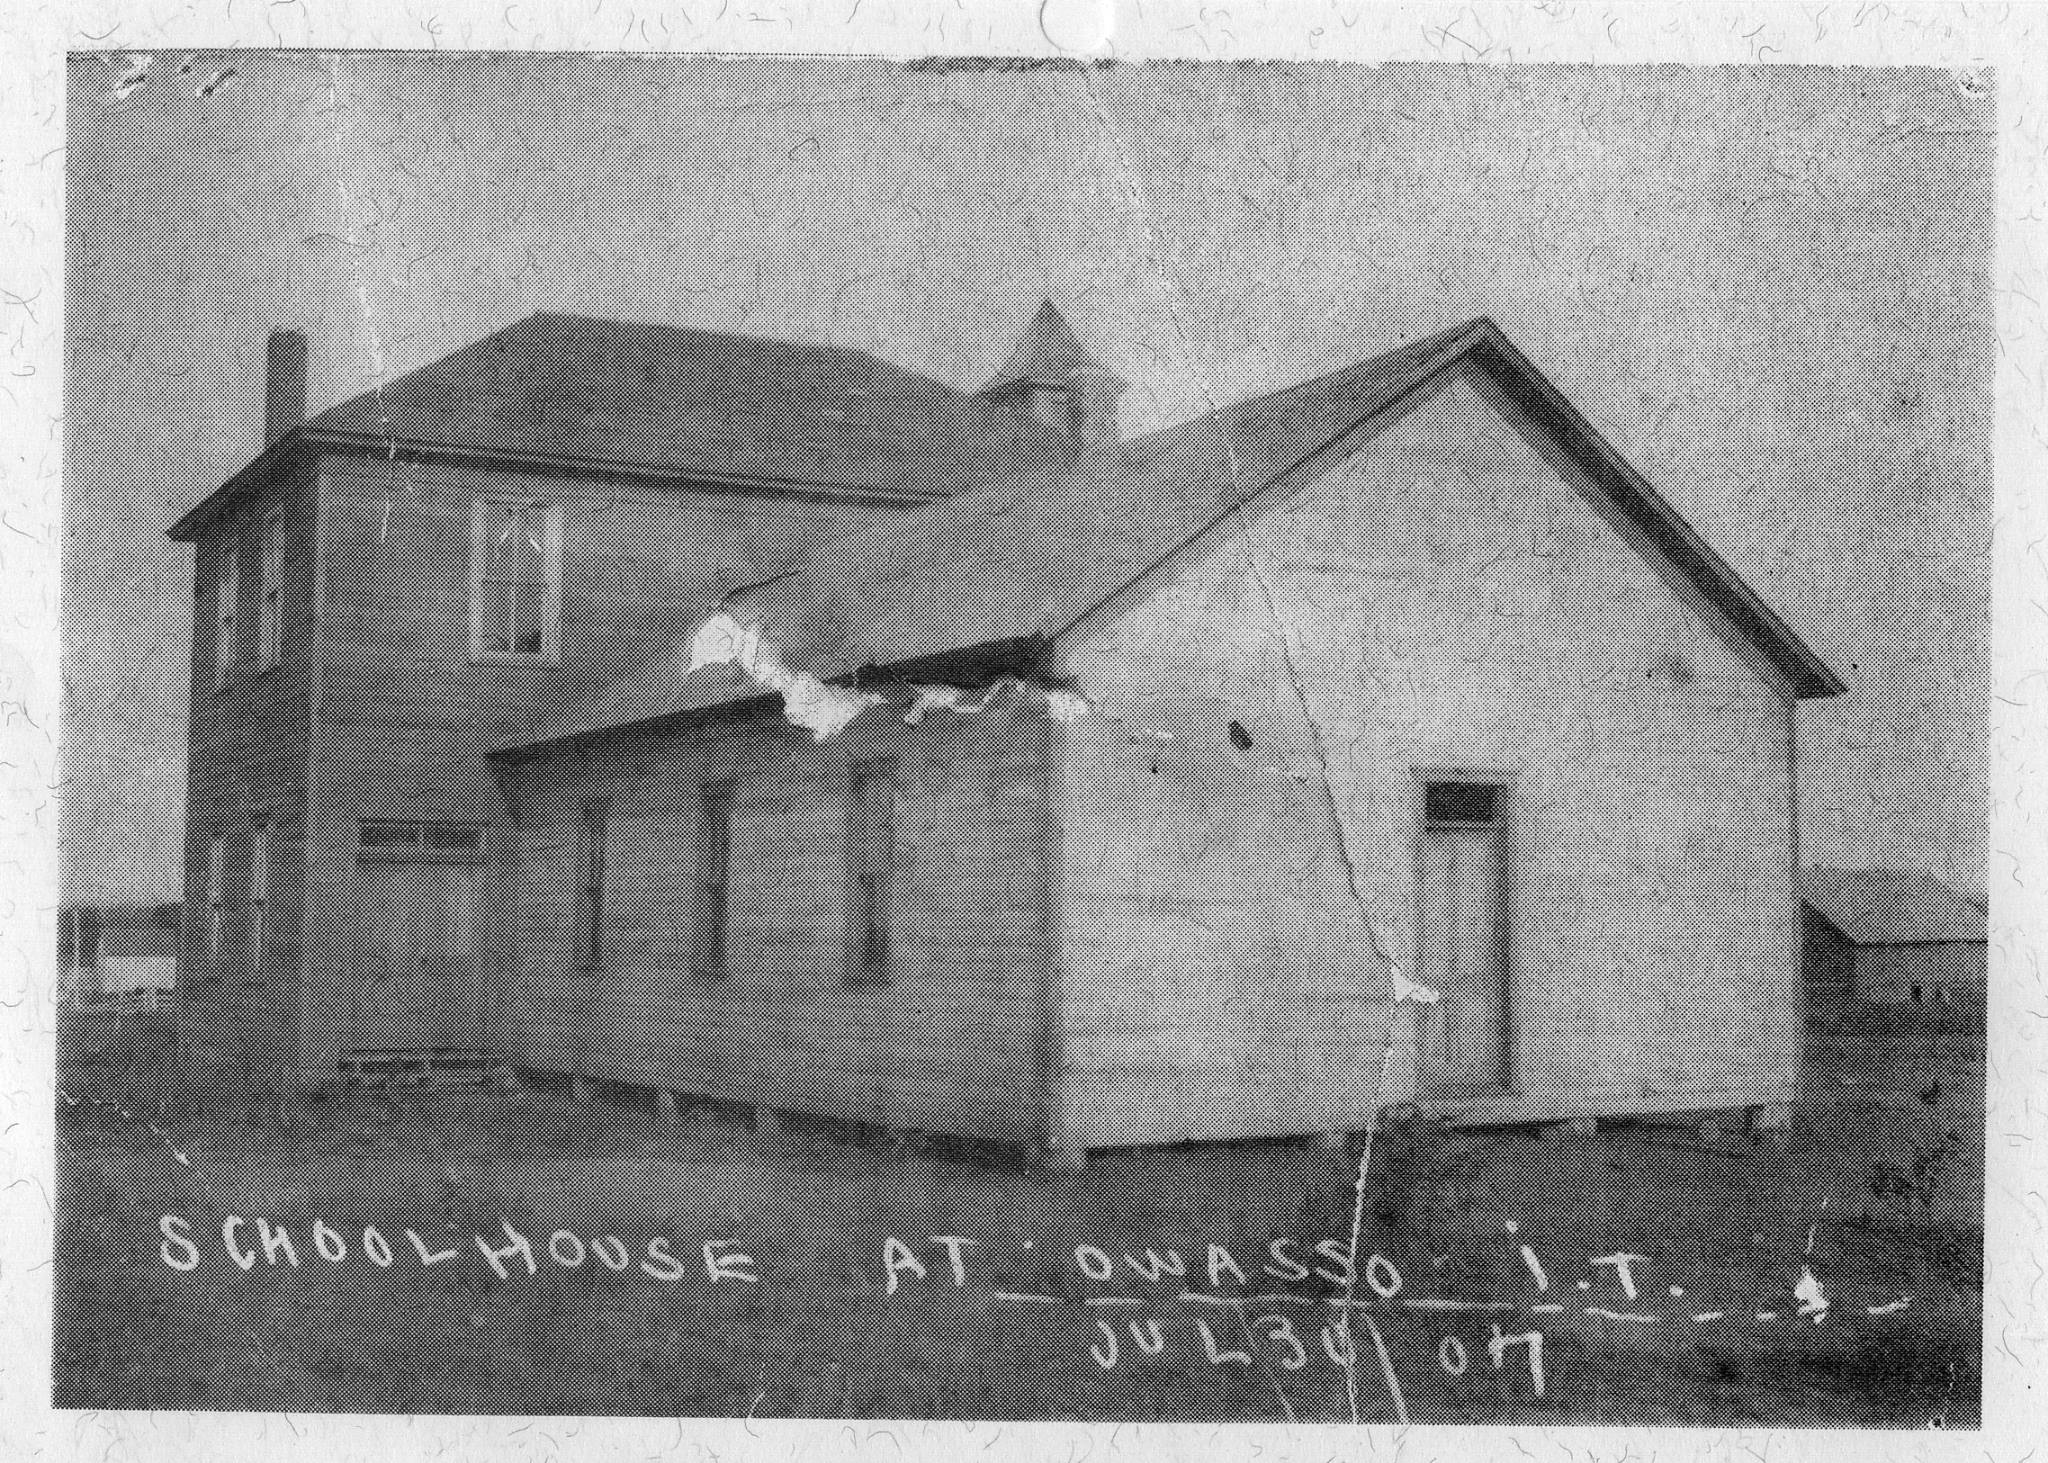 First School in Owasso was established by Lulu Barnes in 1898, for about 20 students    .